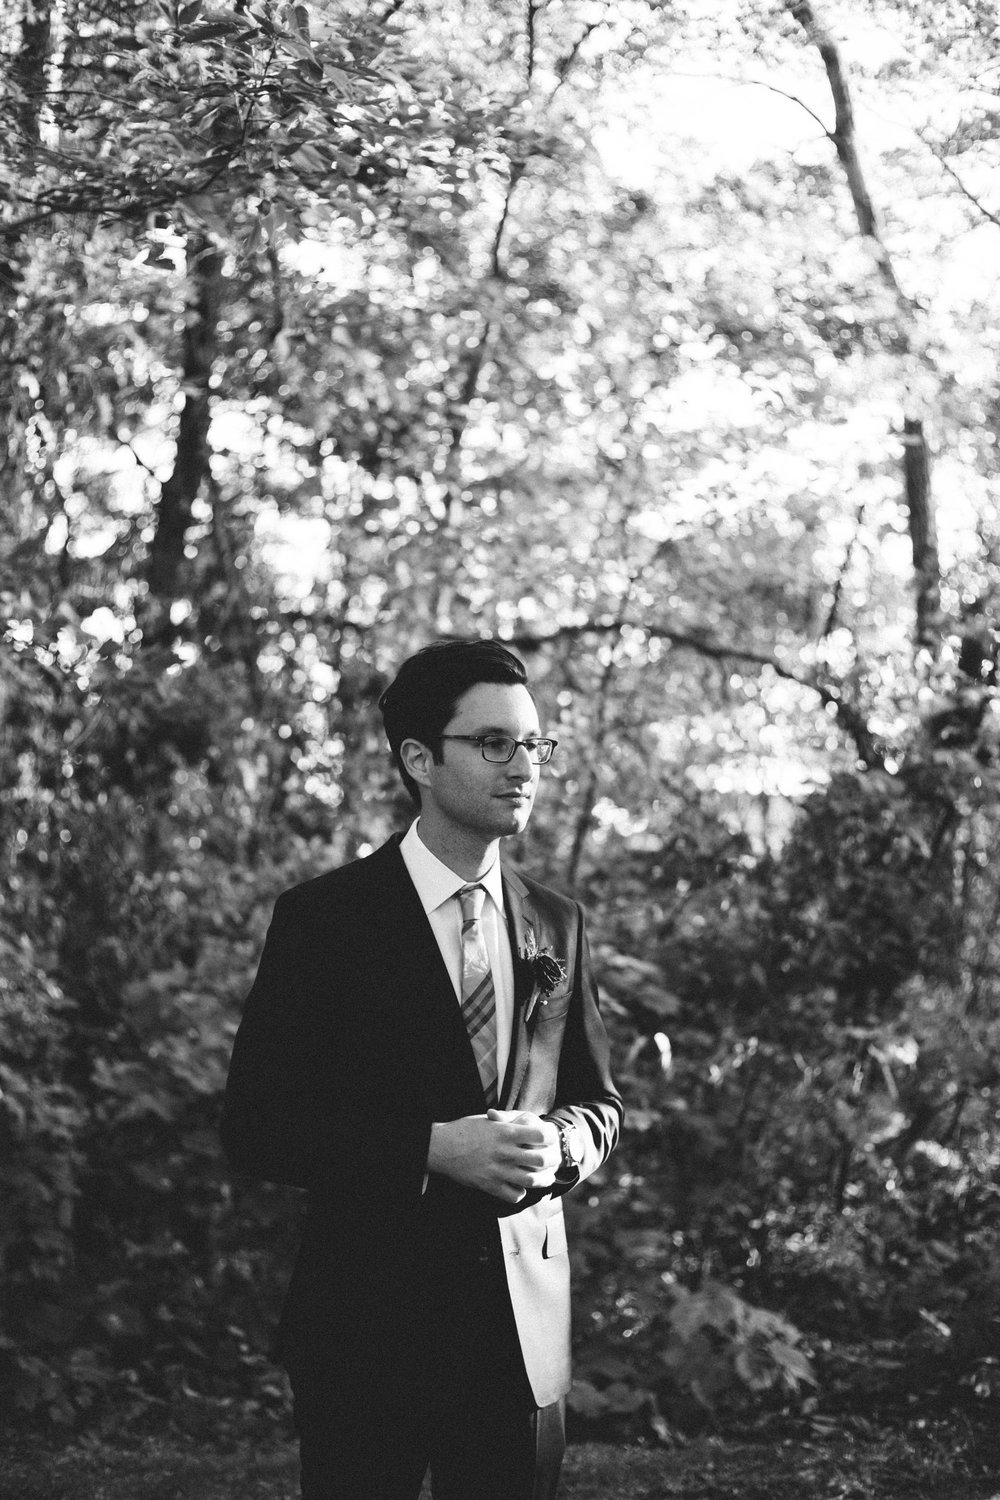 Timeless, black and white portrait of groom by Britt DeZeeuw photography, Grand View Lodge wedding photographer